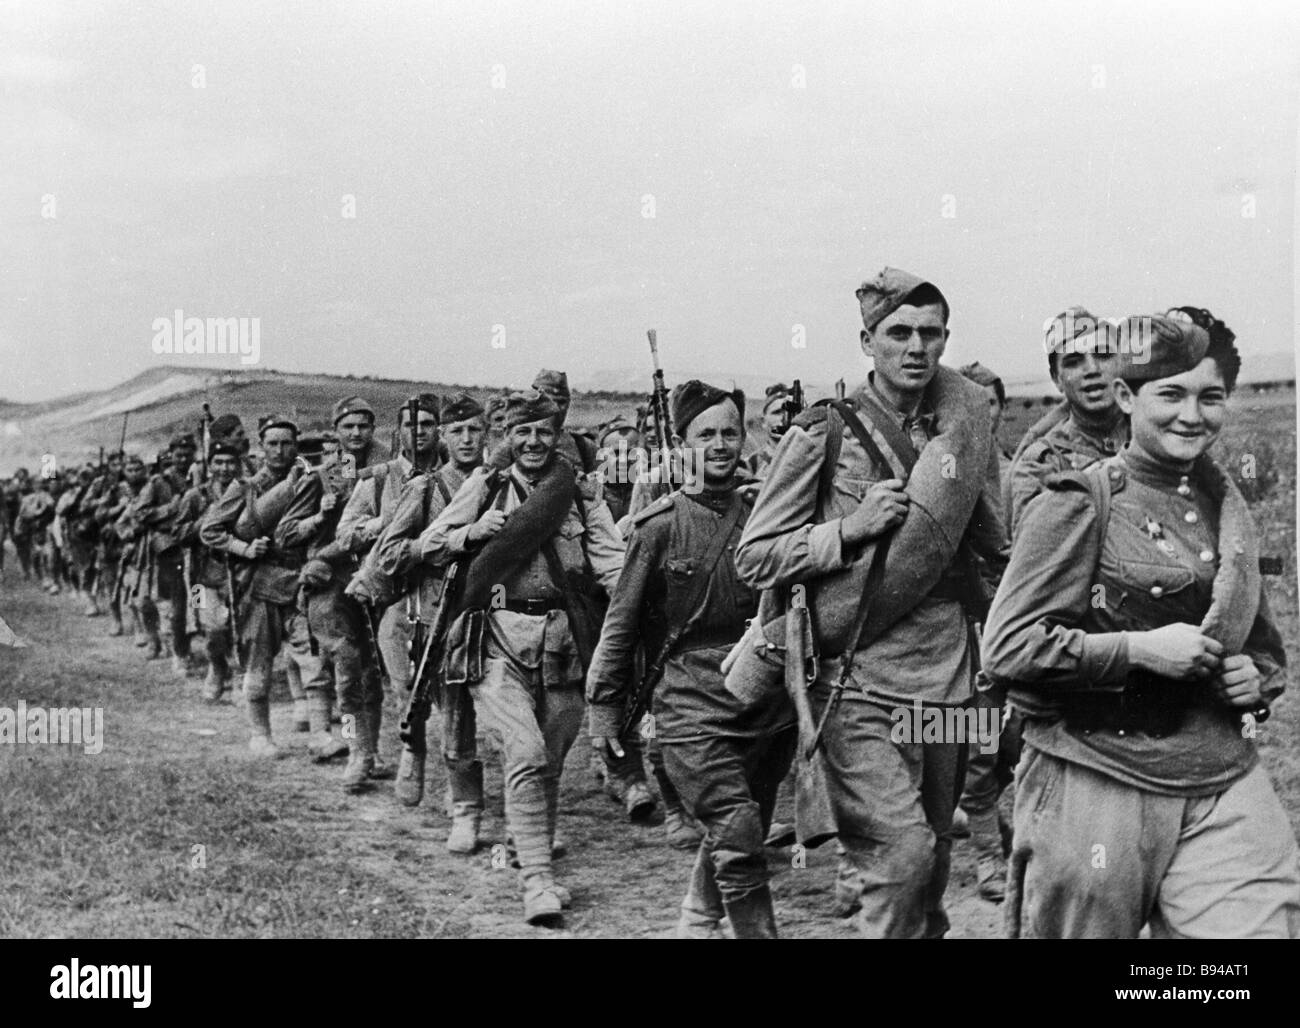 Red Army soldiers on the march the second world war - Stock Image